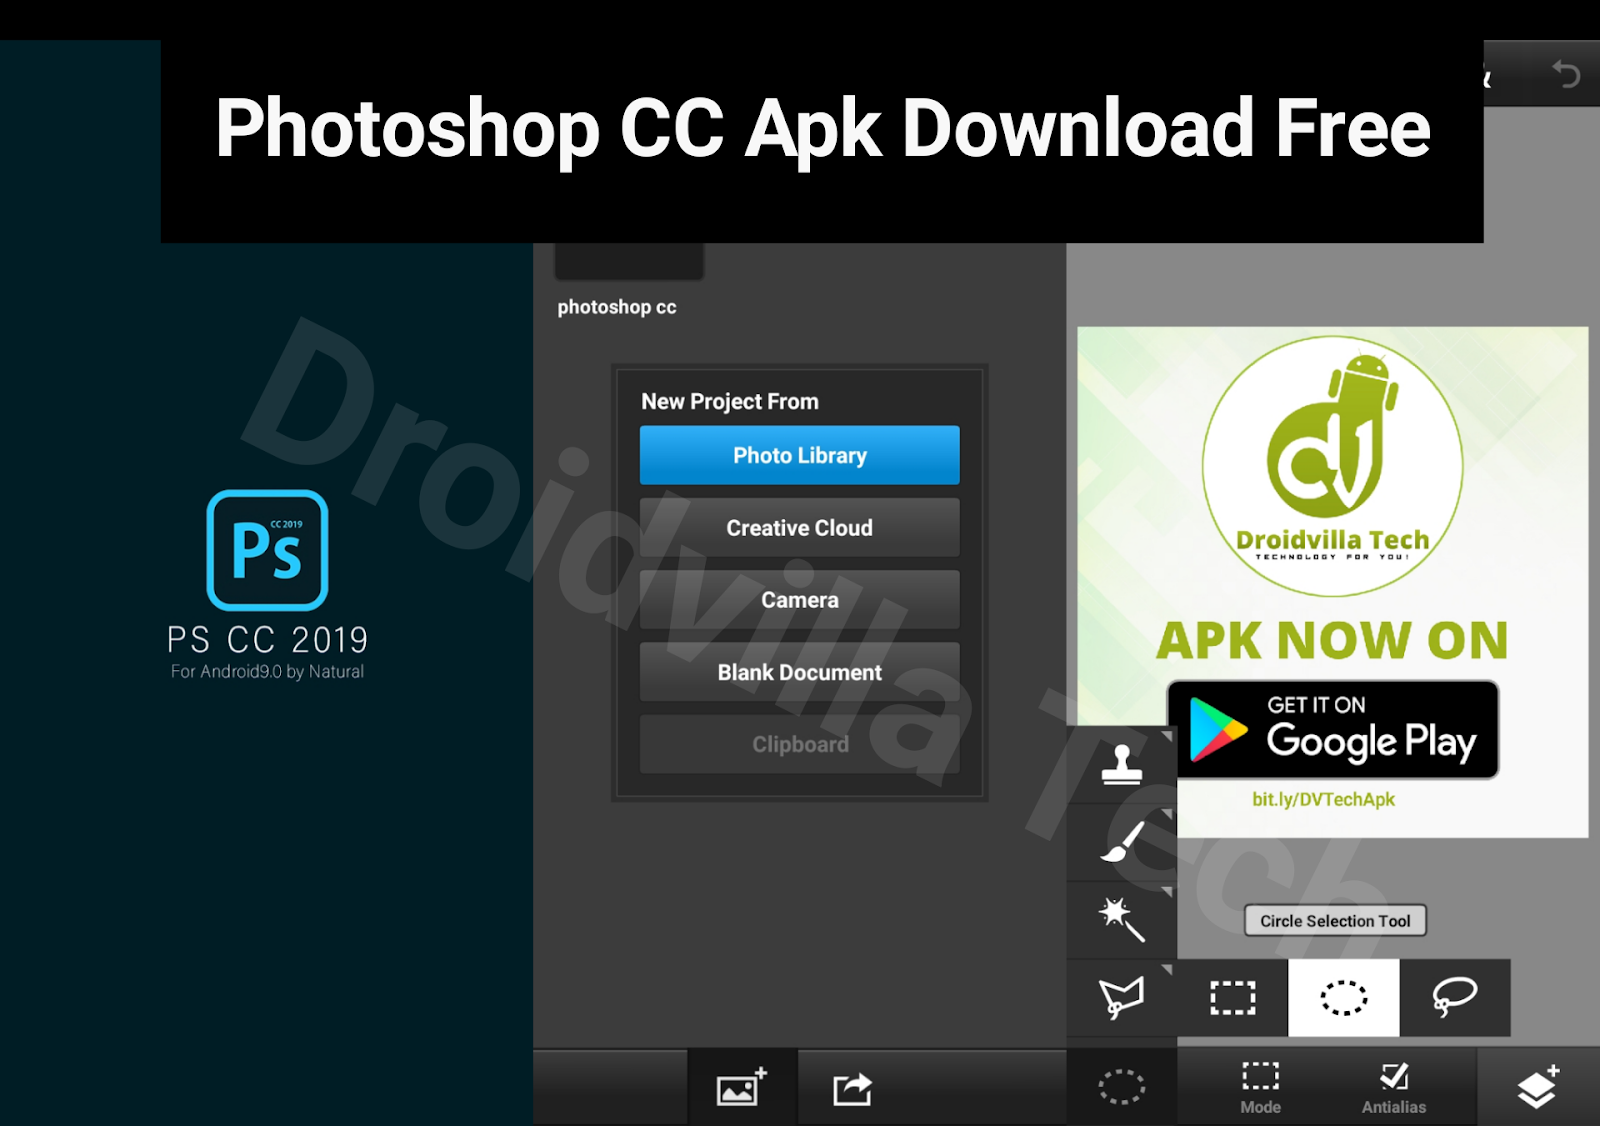 Photoshop cc apk download